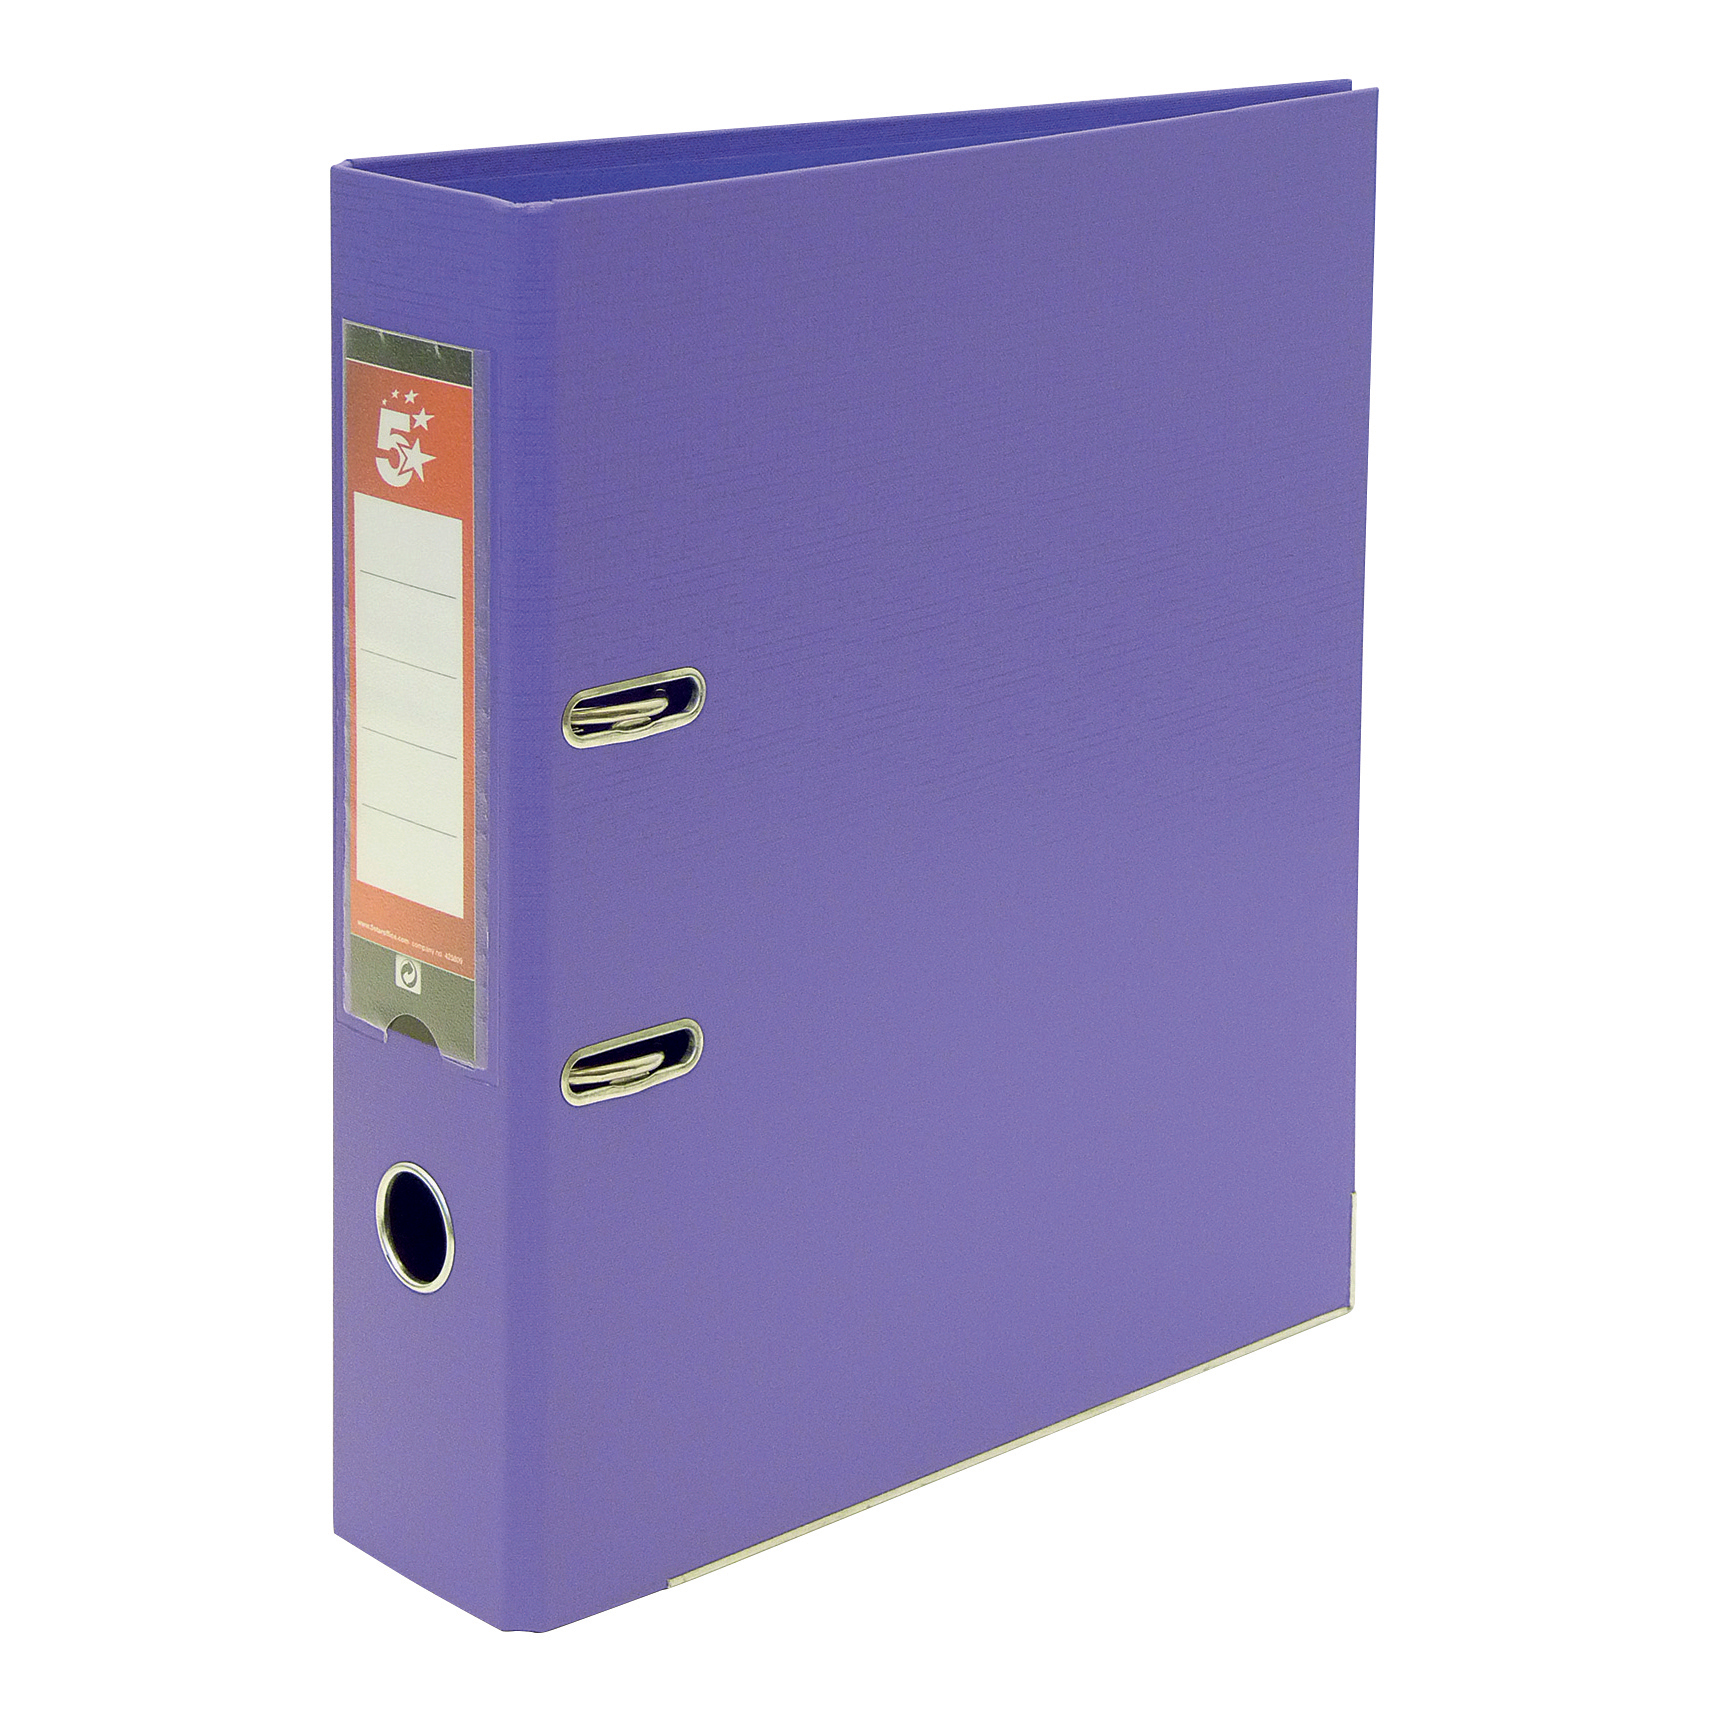 Lever Arch Files 5 Star Office Lever Arch File Polypropylene Capacity 70mm A4 Purple Pack 10